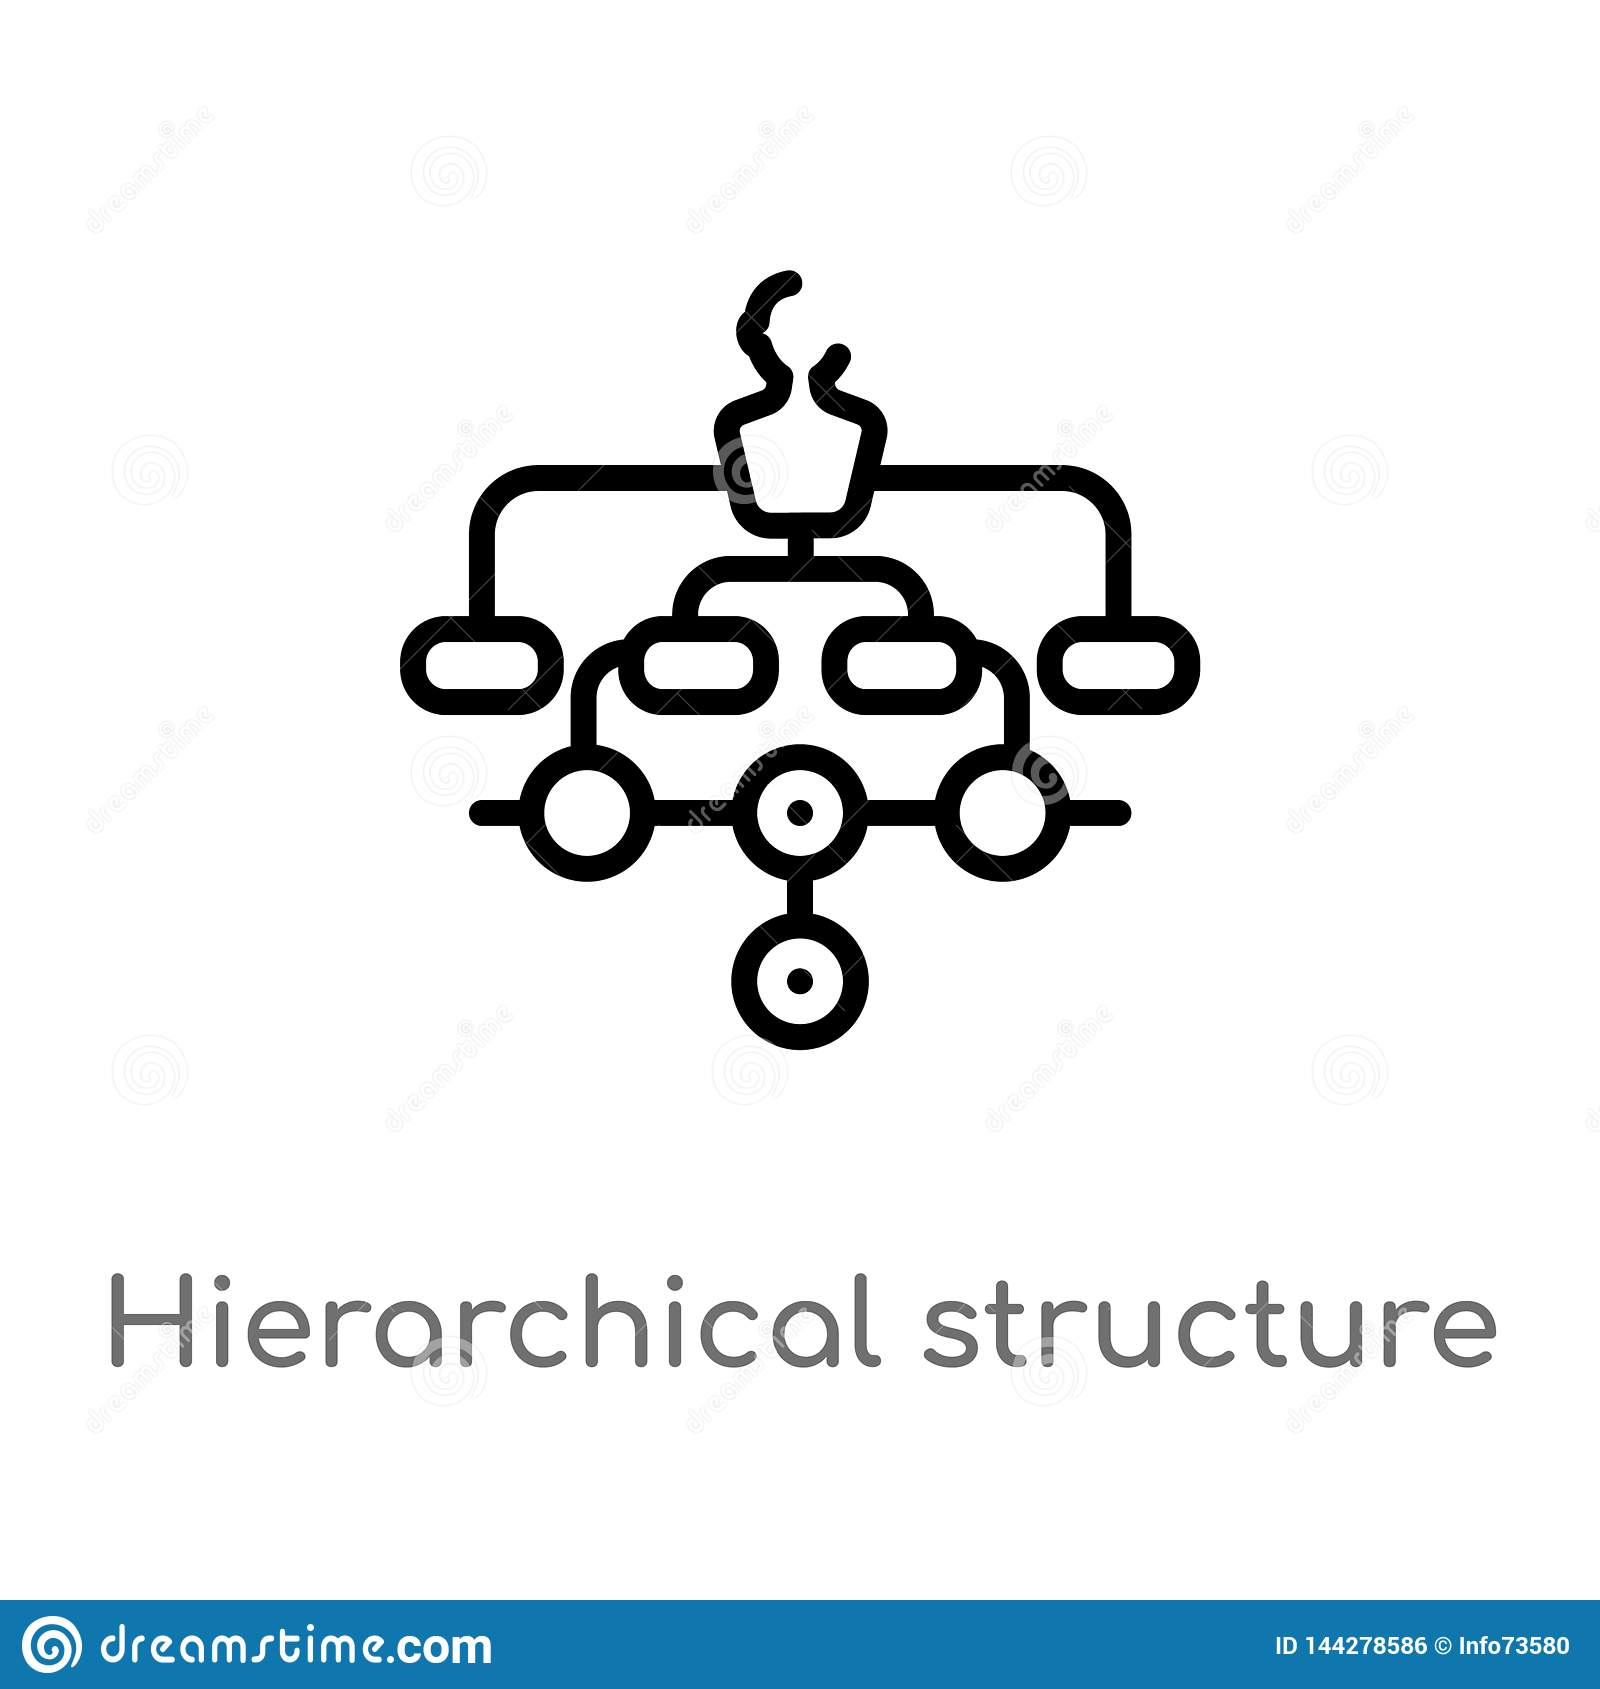 outline hierarchical structure vector icon. isolated black simple line element illustration from digital economy concept. editable